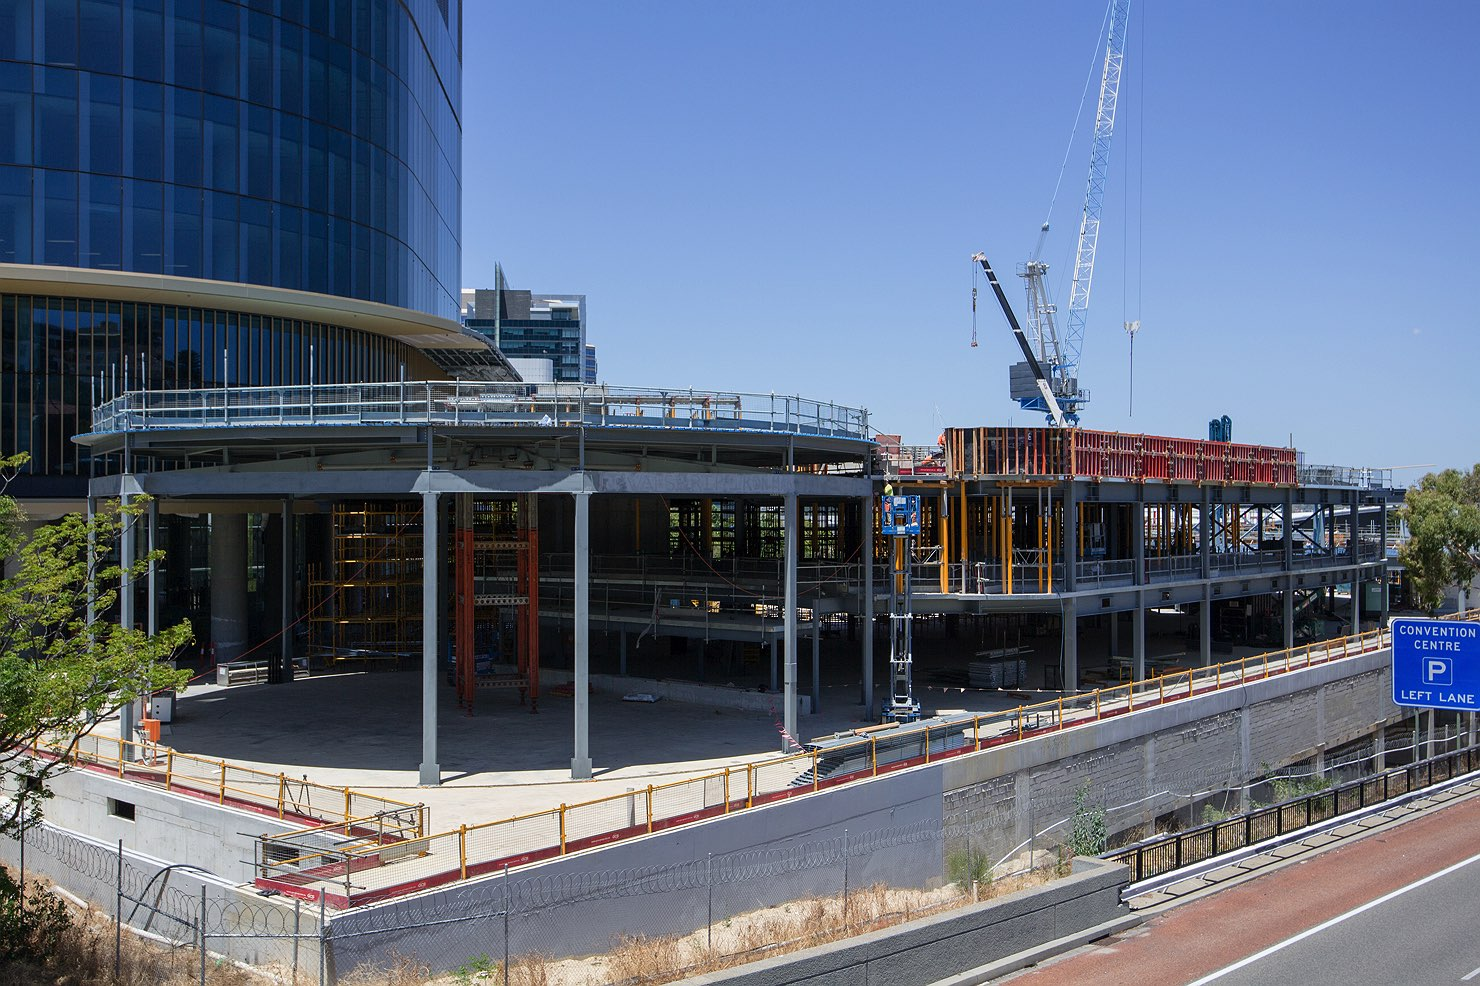 capital-square-freeway-construction-site-perth-city